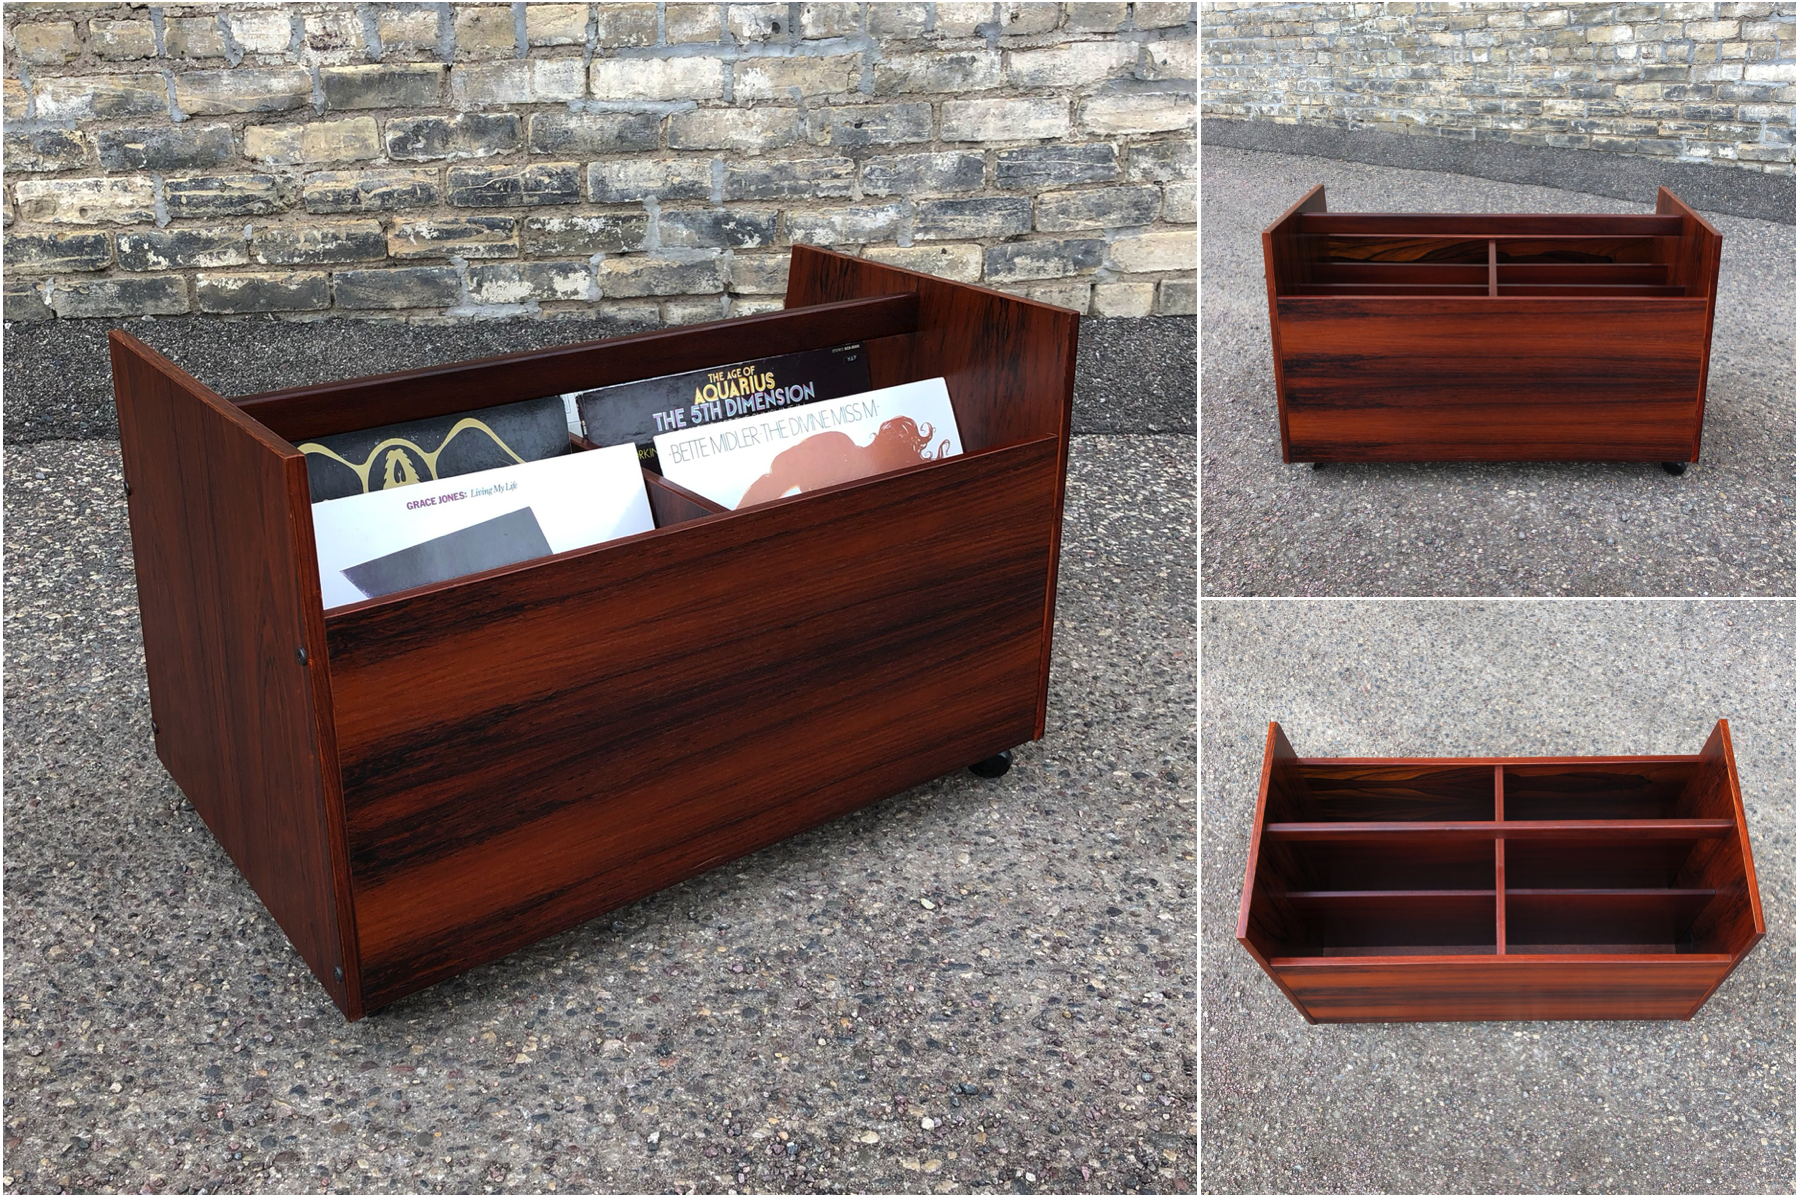 Bruksbo (Norway) rosewood rolling cart for LPs or magazines